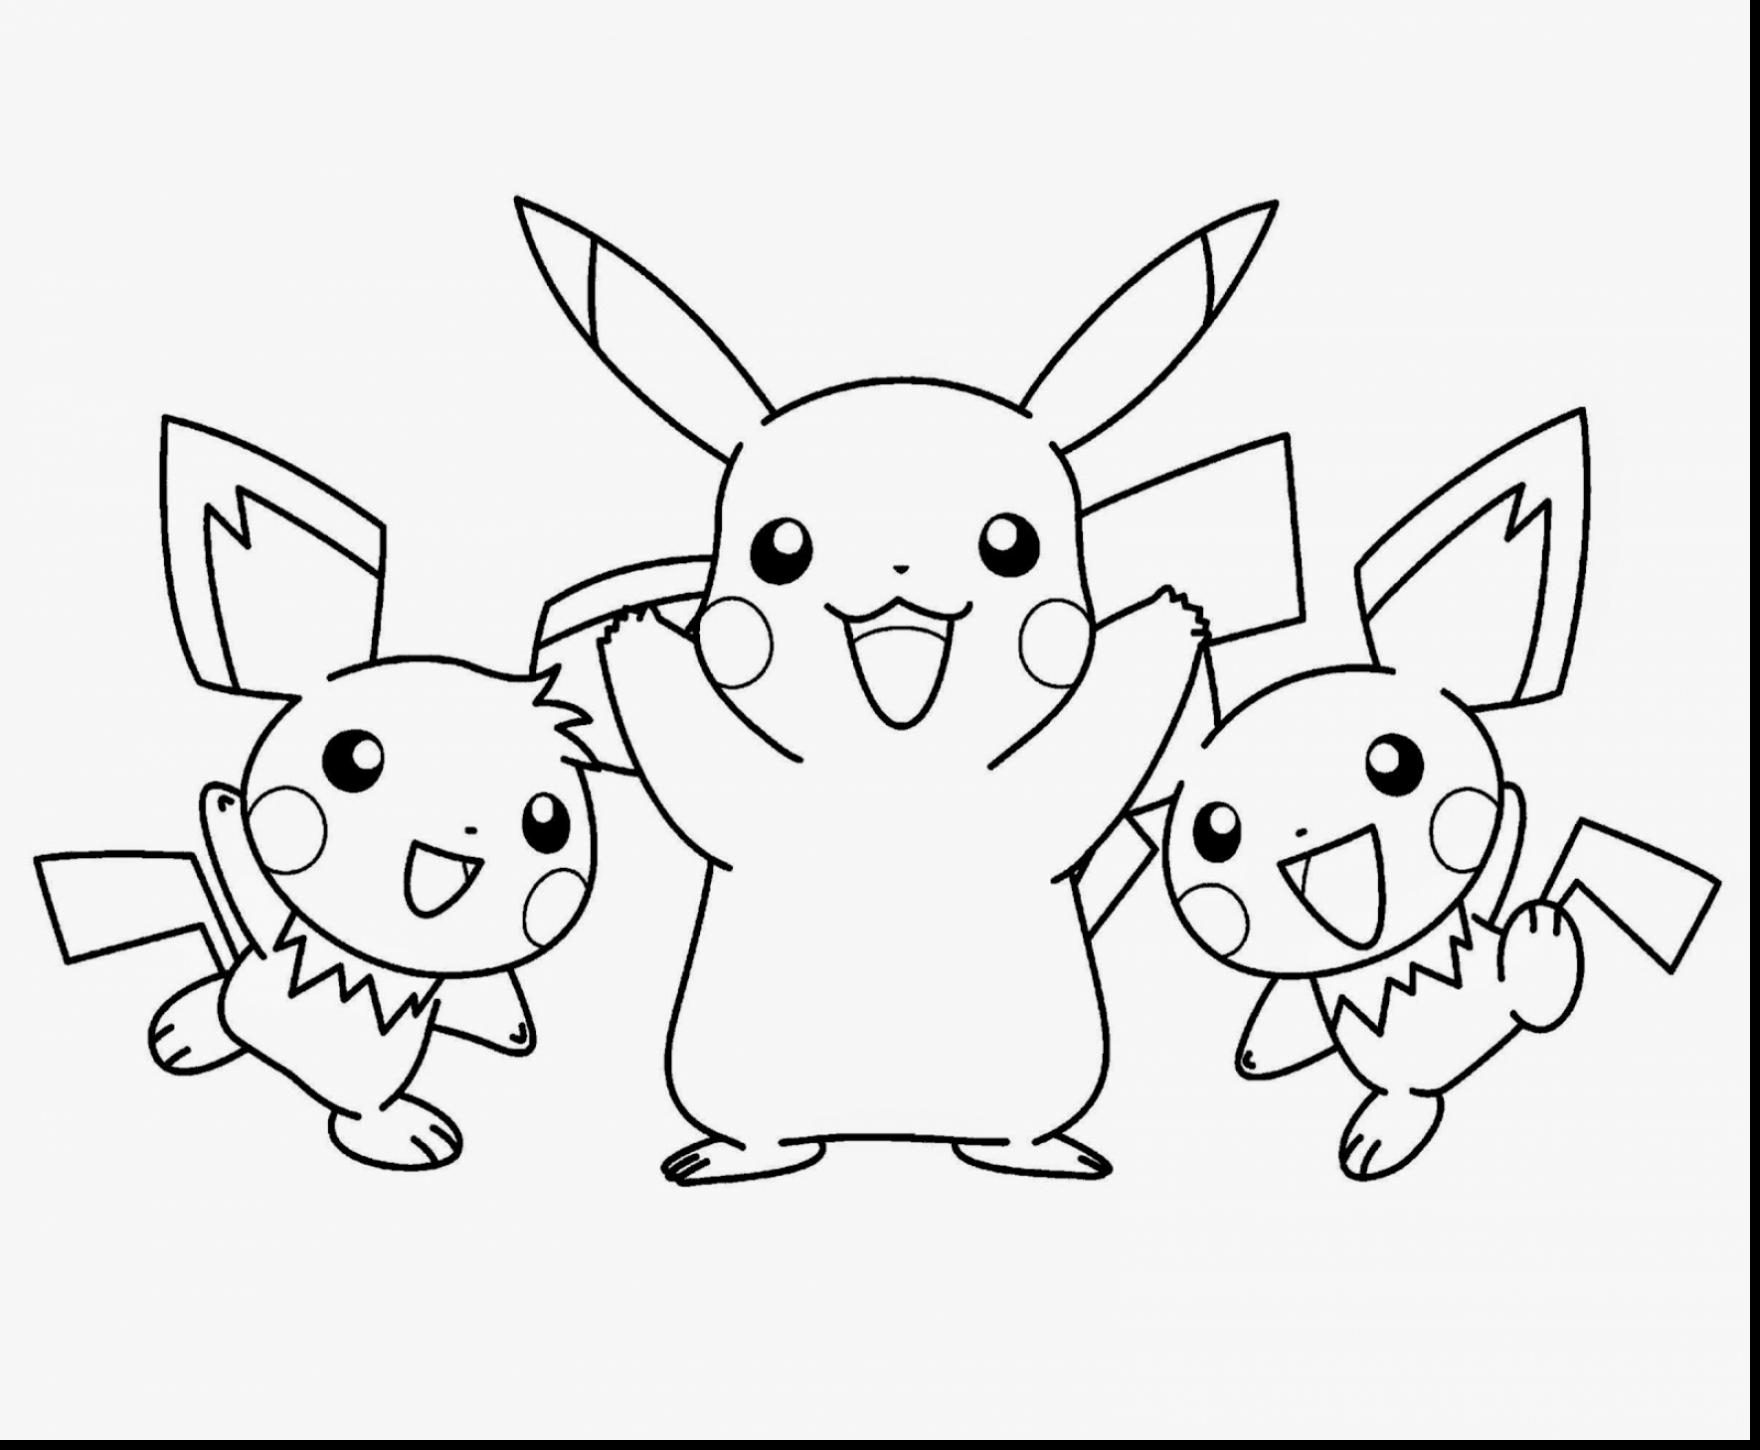 Eeveelutions Coloring Pages At Getdrawings Com Free For